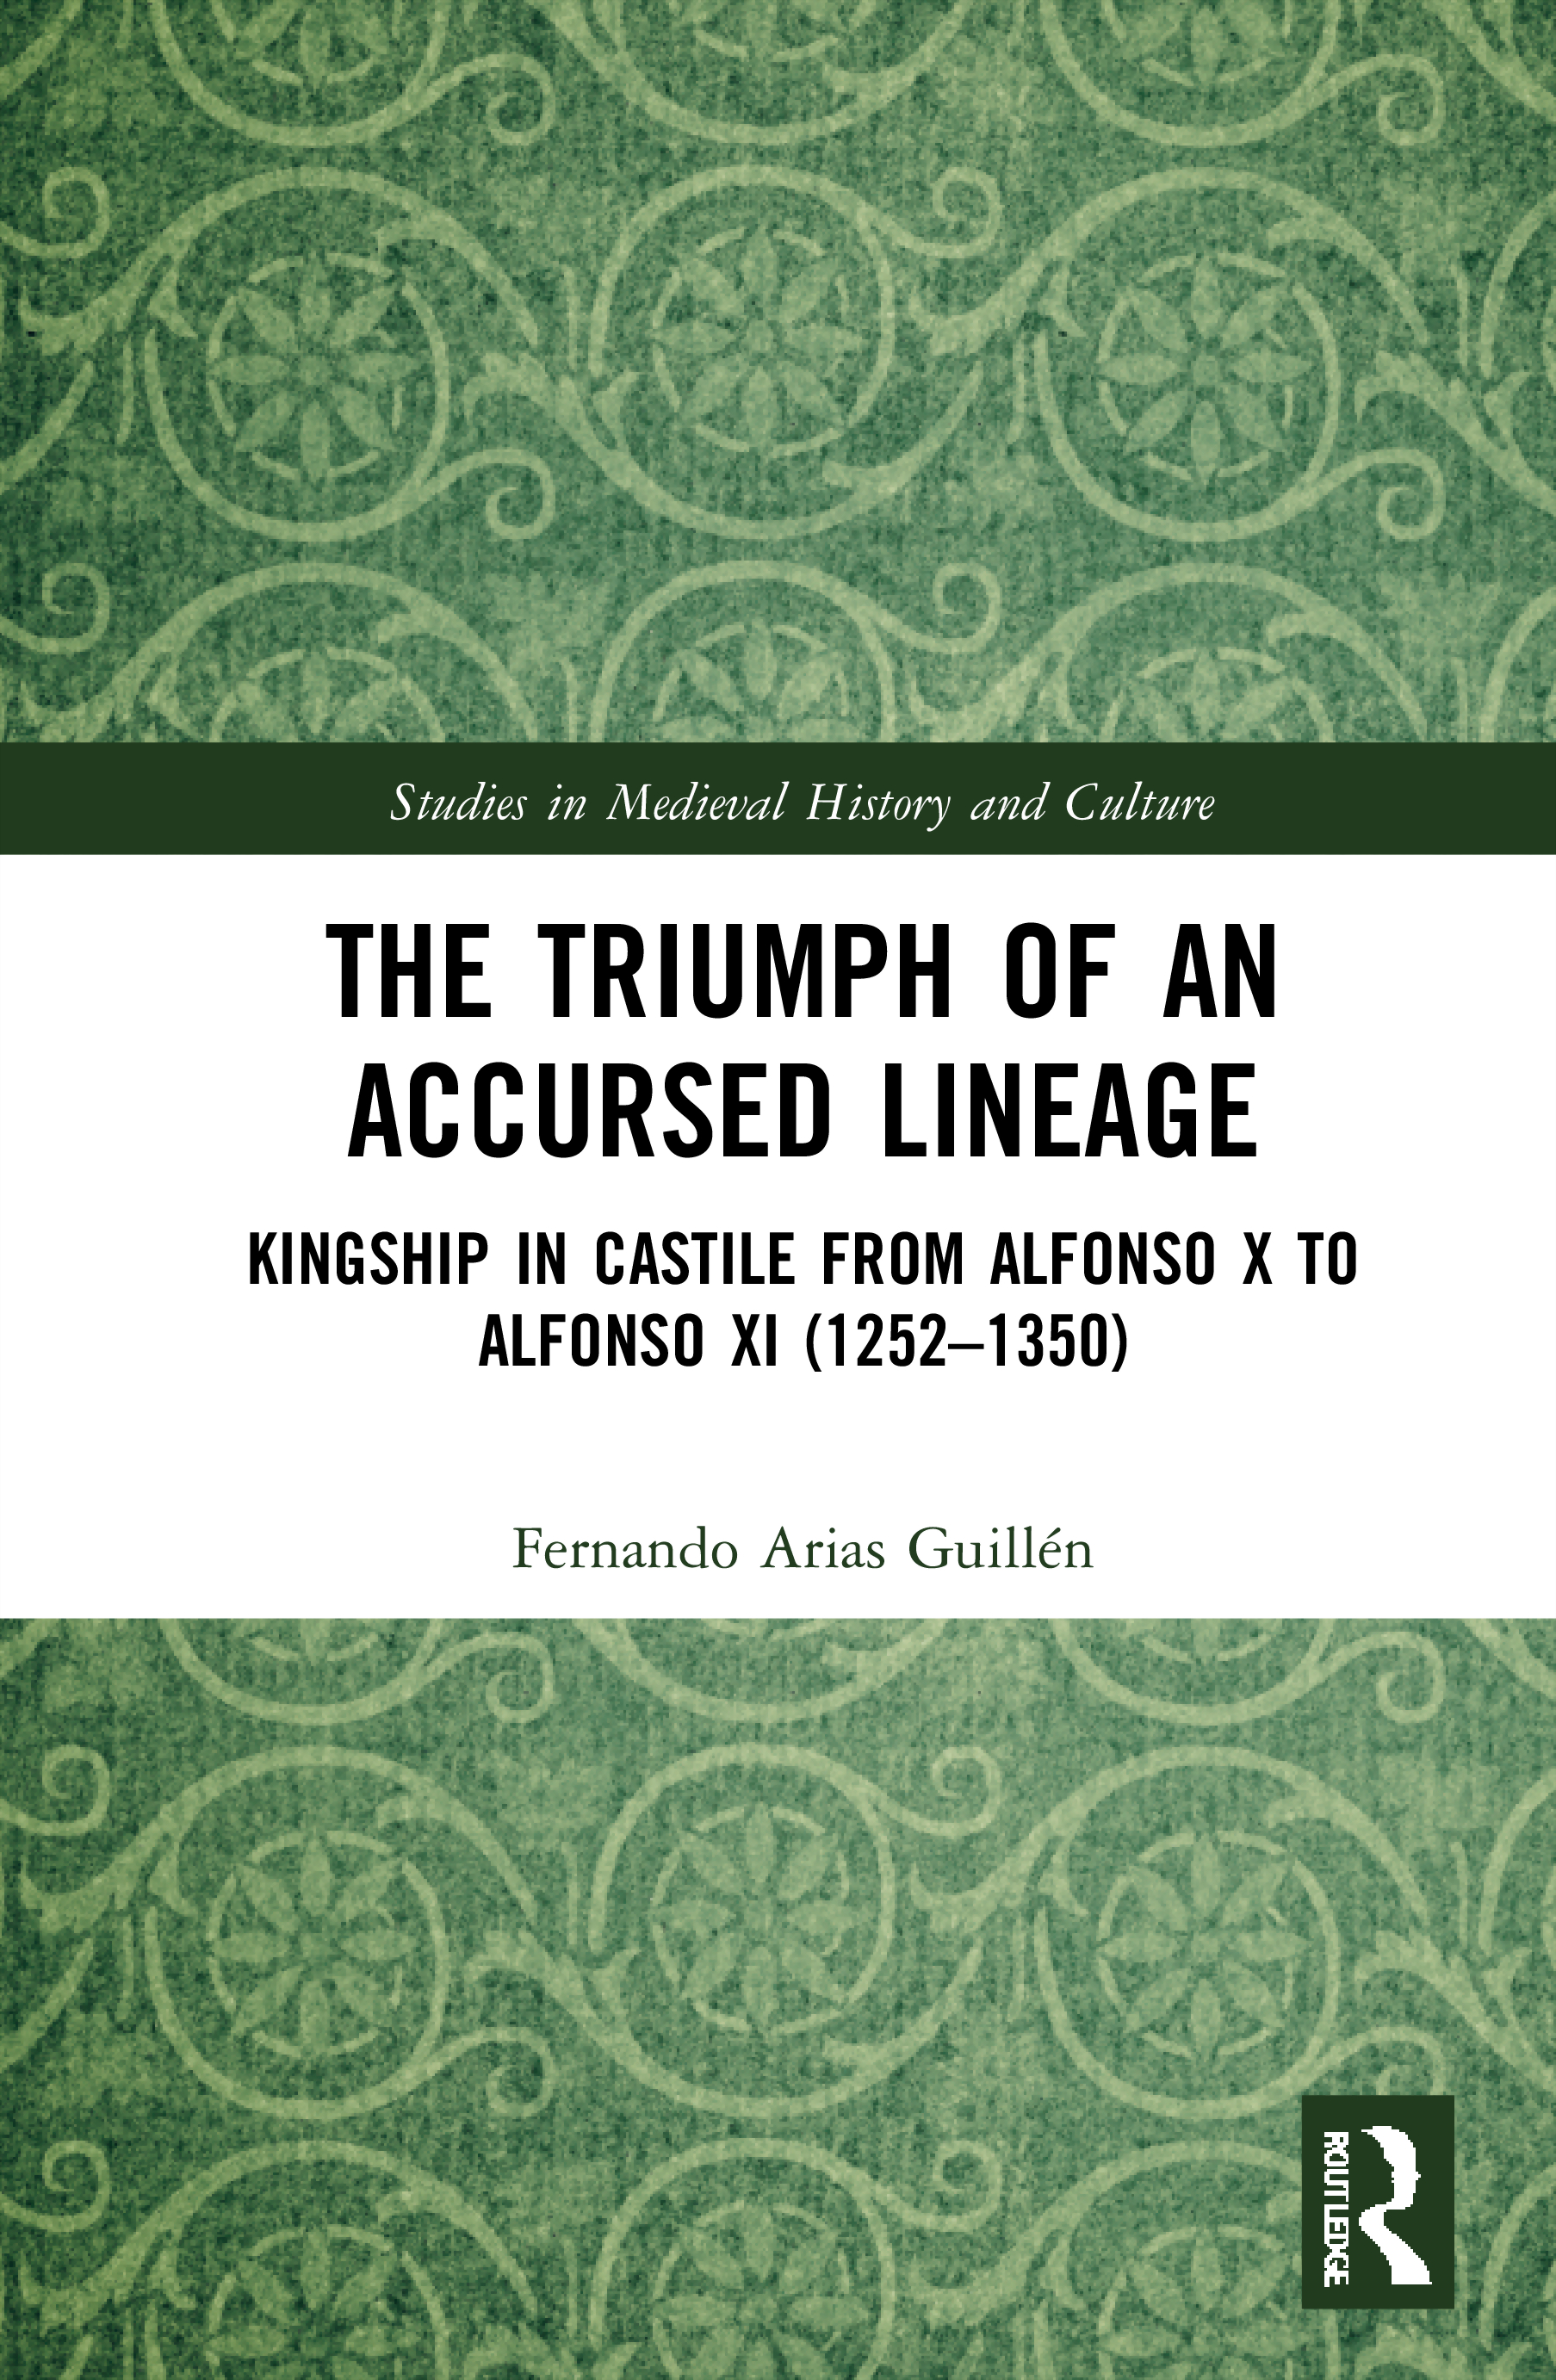 The Triumph of an Accursed Lineage